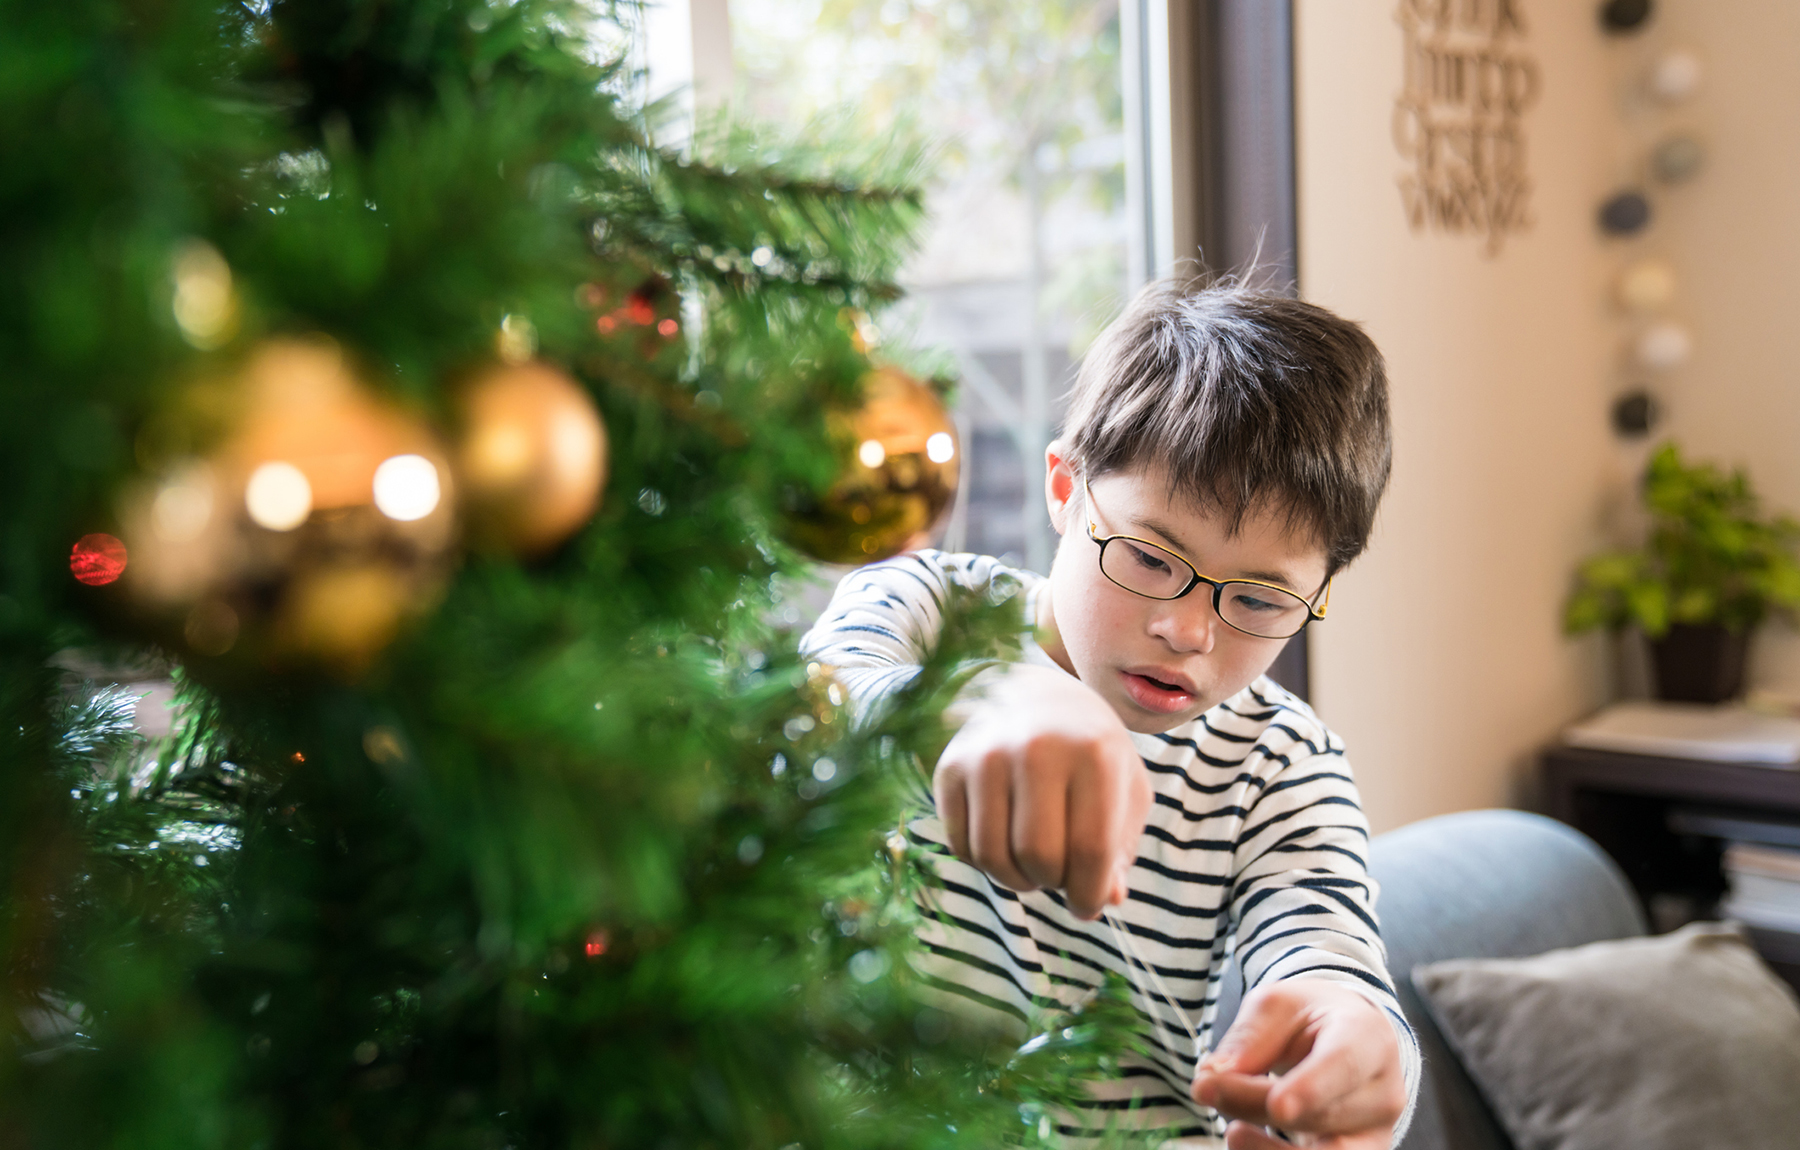 What Can Your Church do to Welcome Special Needs Families This Christmas?